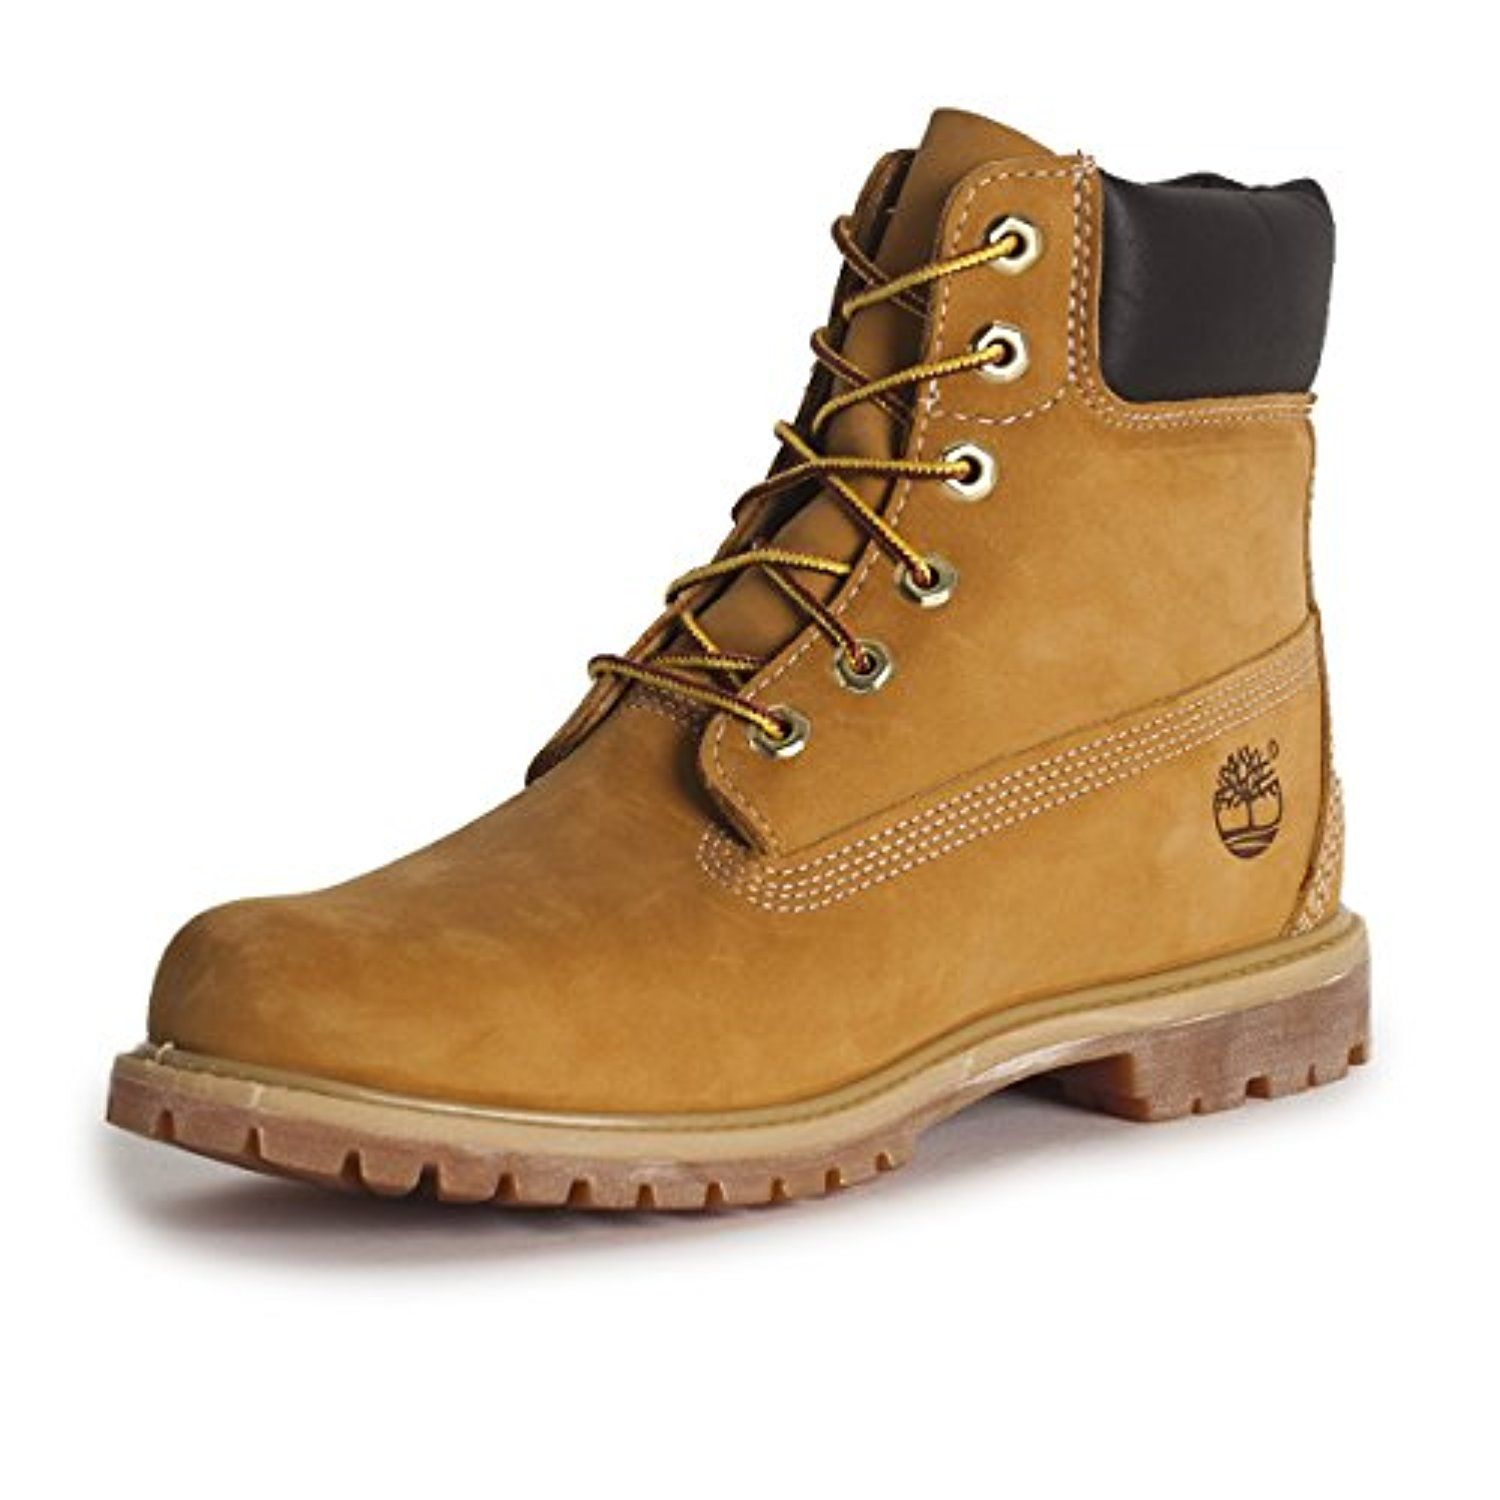 c4d97cf9adce2 Timberland 6 In 6in Premium Boot-W